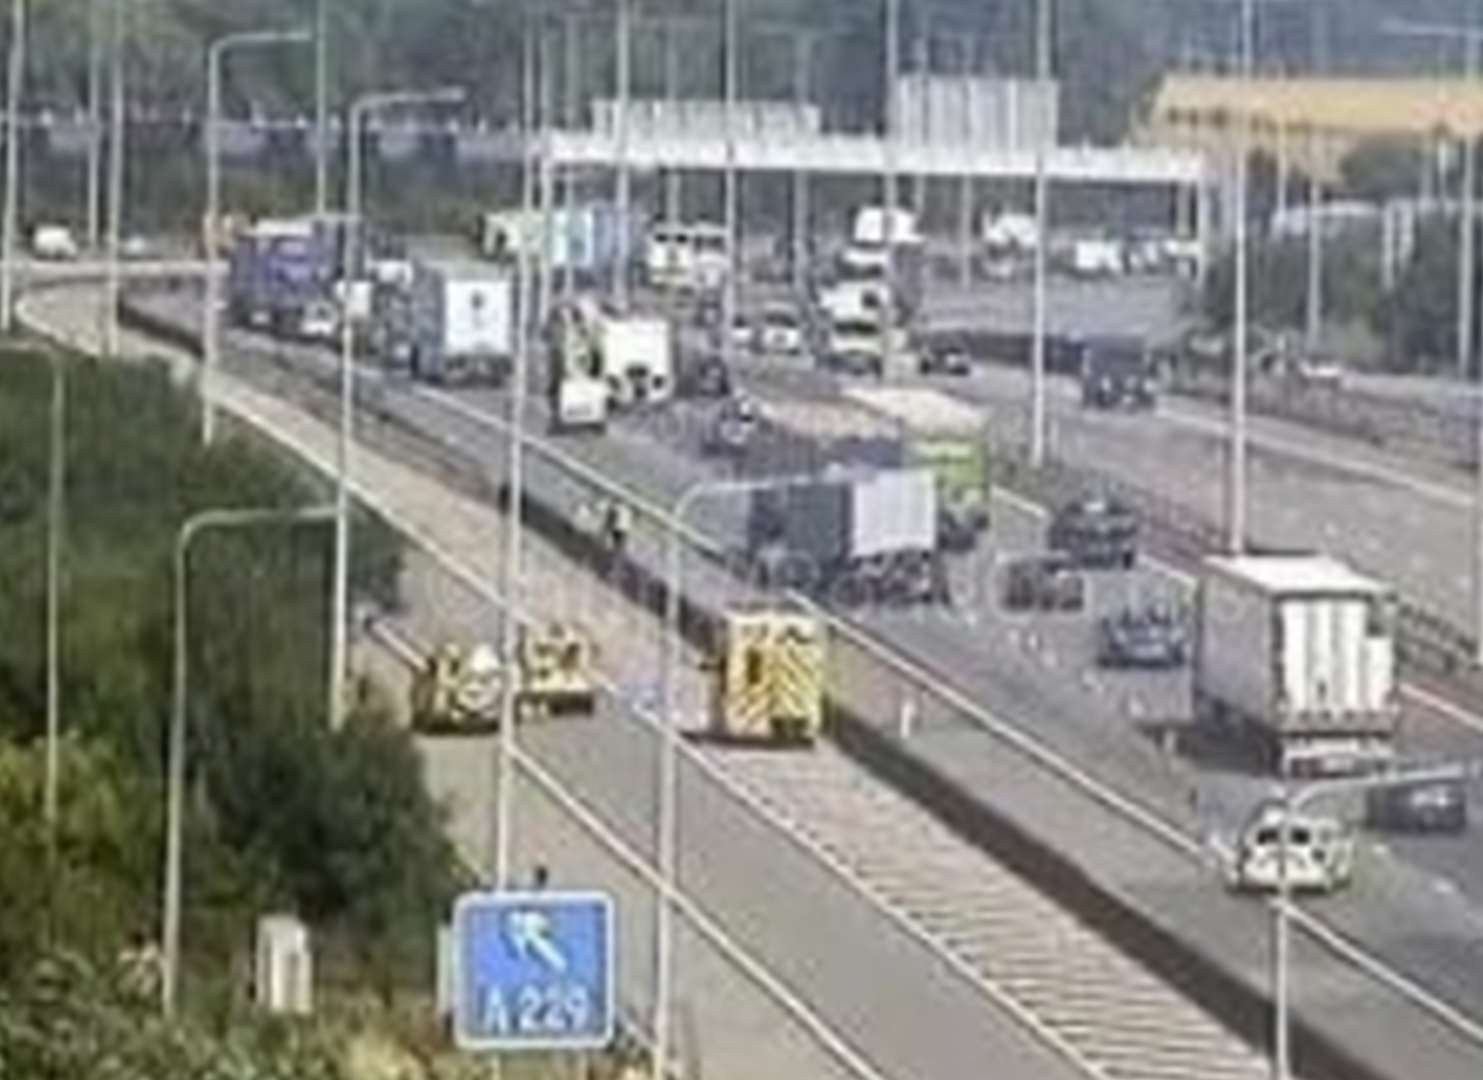 Two separate collisions on the M20